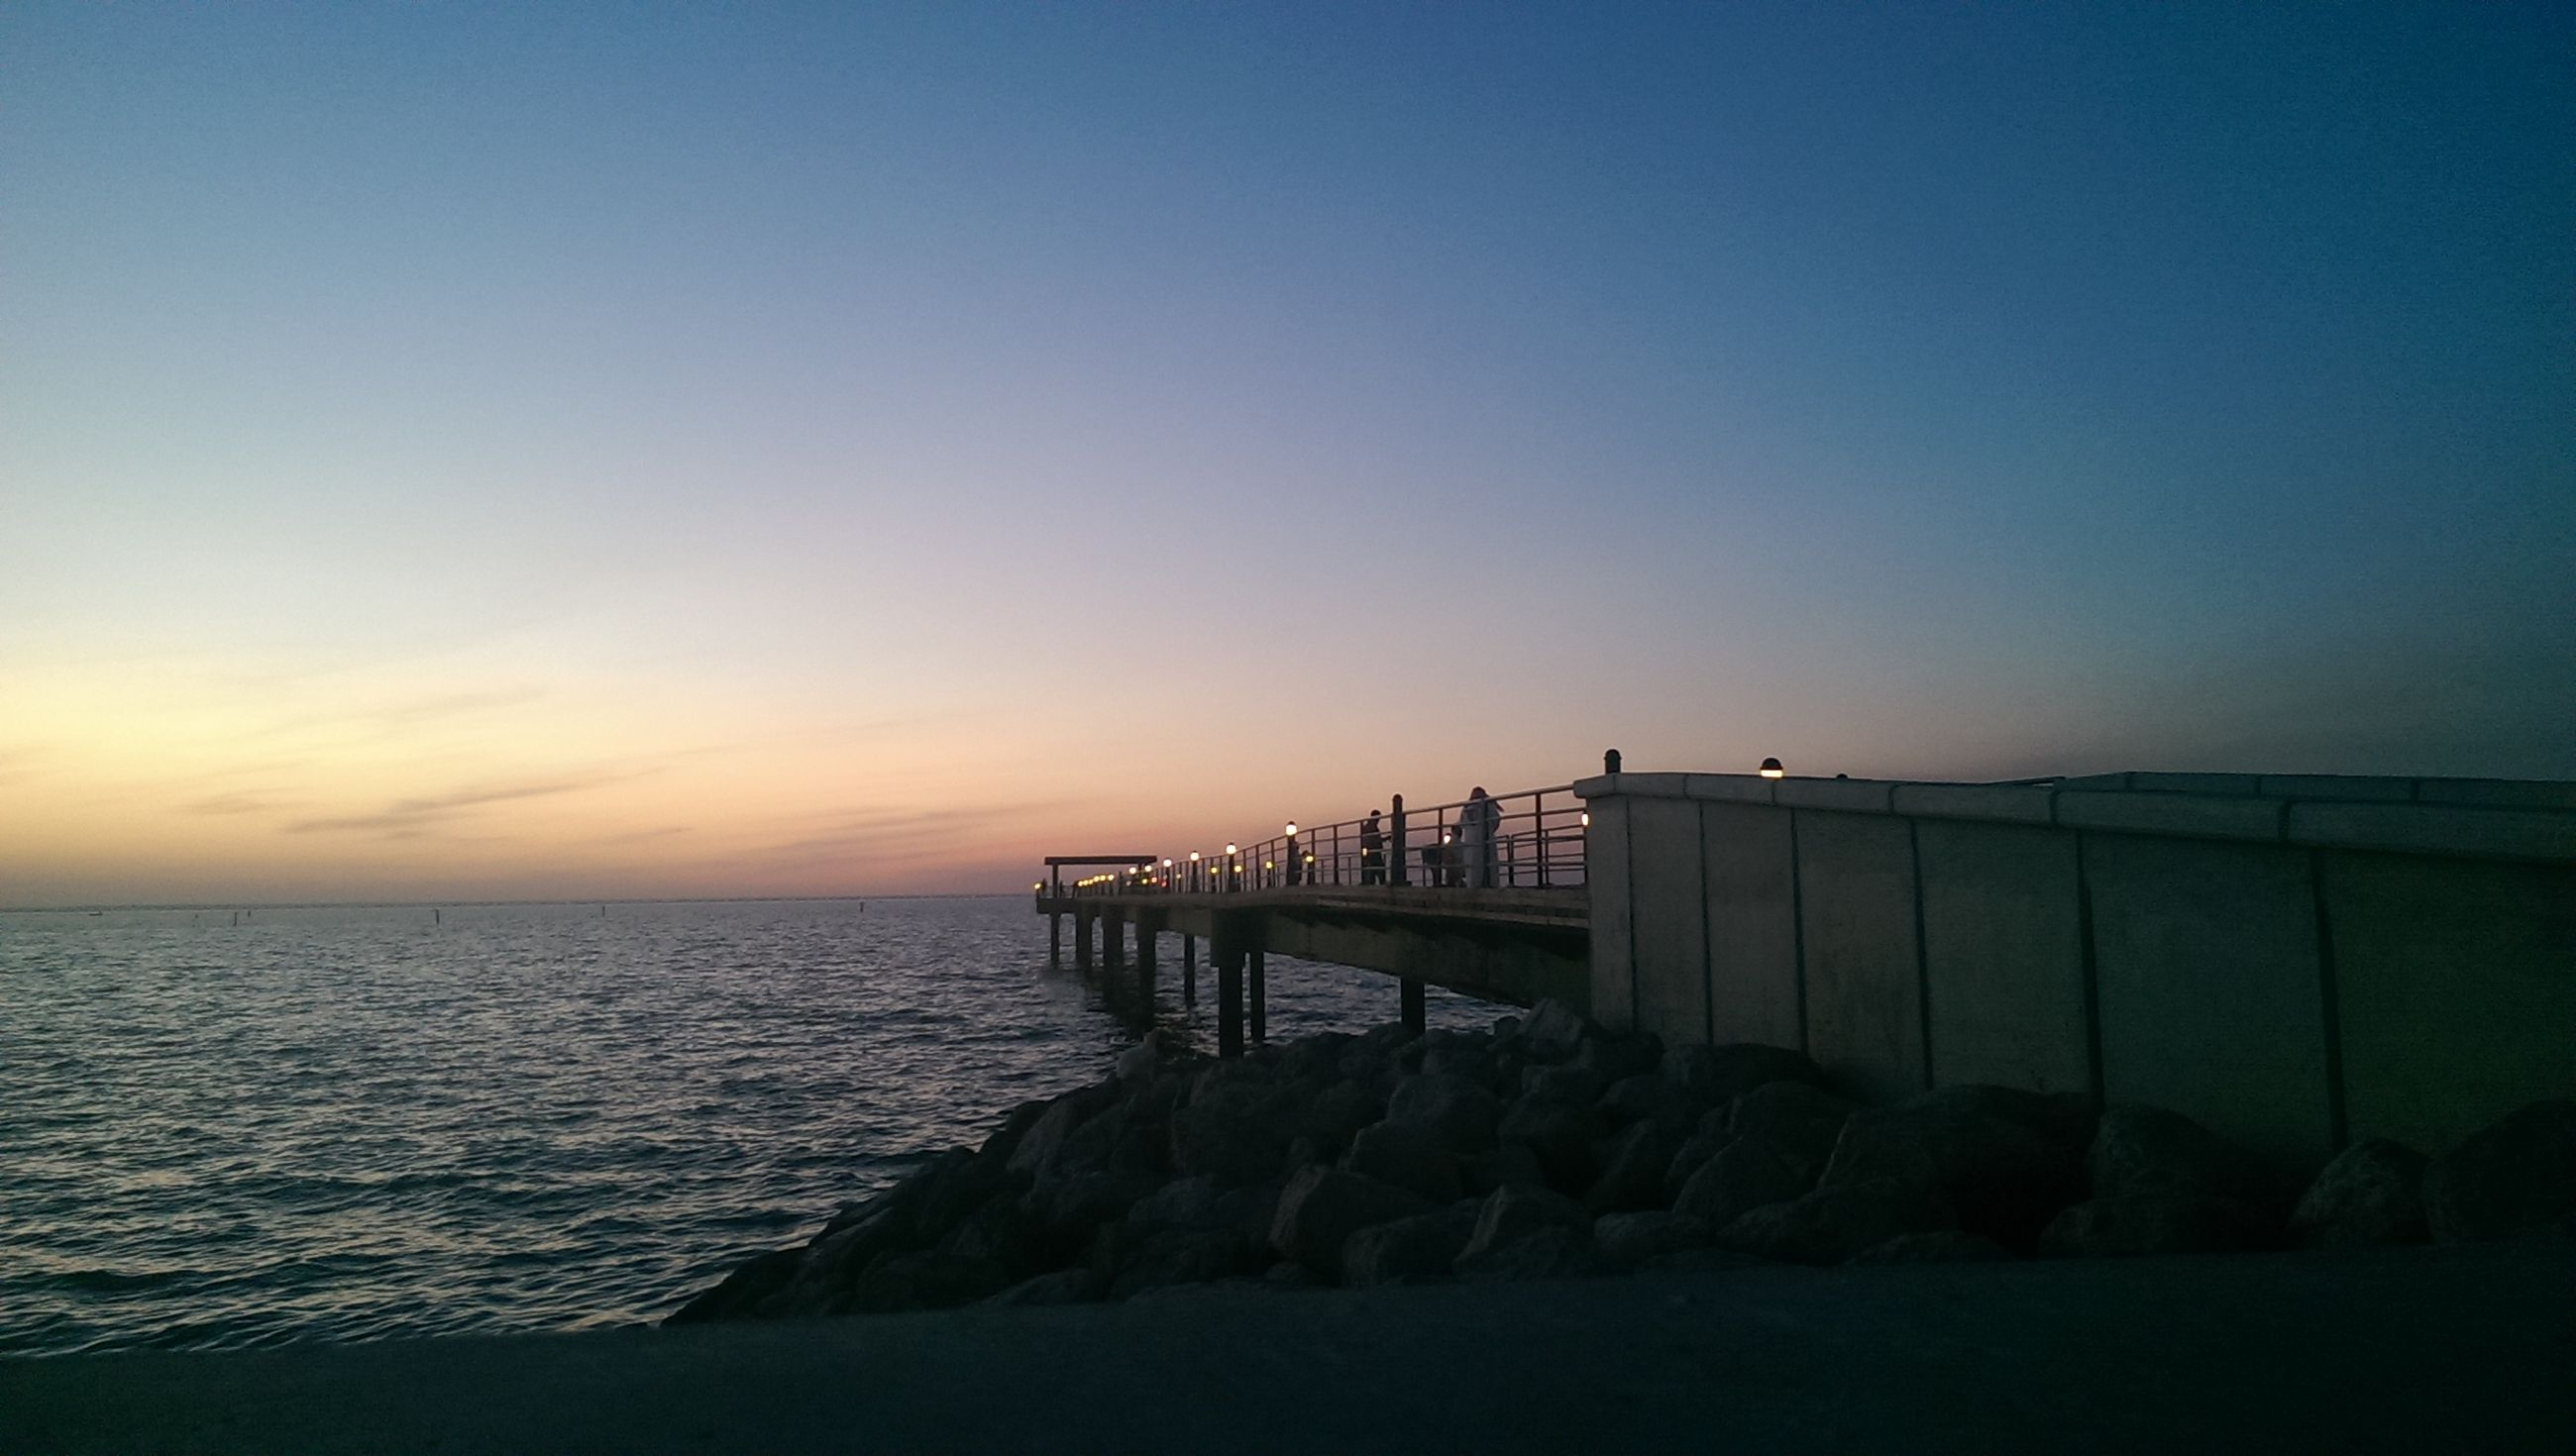 sea, water, horizon over water, scenics, copy space, tranquil scene, tranquility, clear sky, beauty in nature, pier, sunset, built structure, beach, nature, sky, idyllic, shore, rock - object, architecture, blue